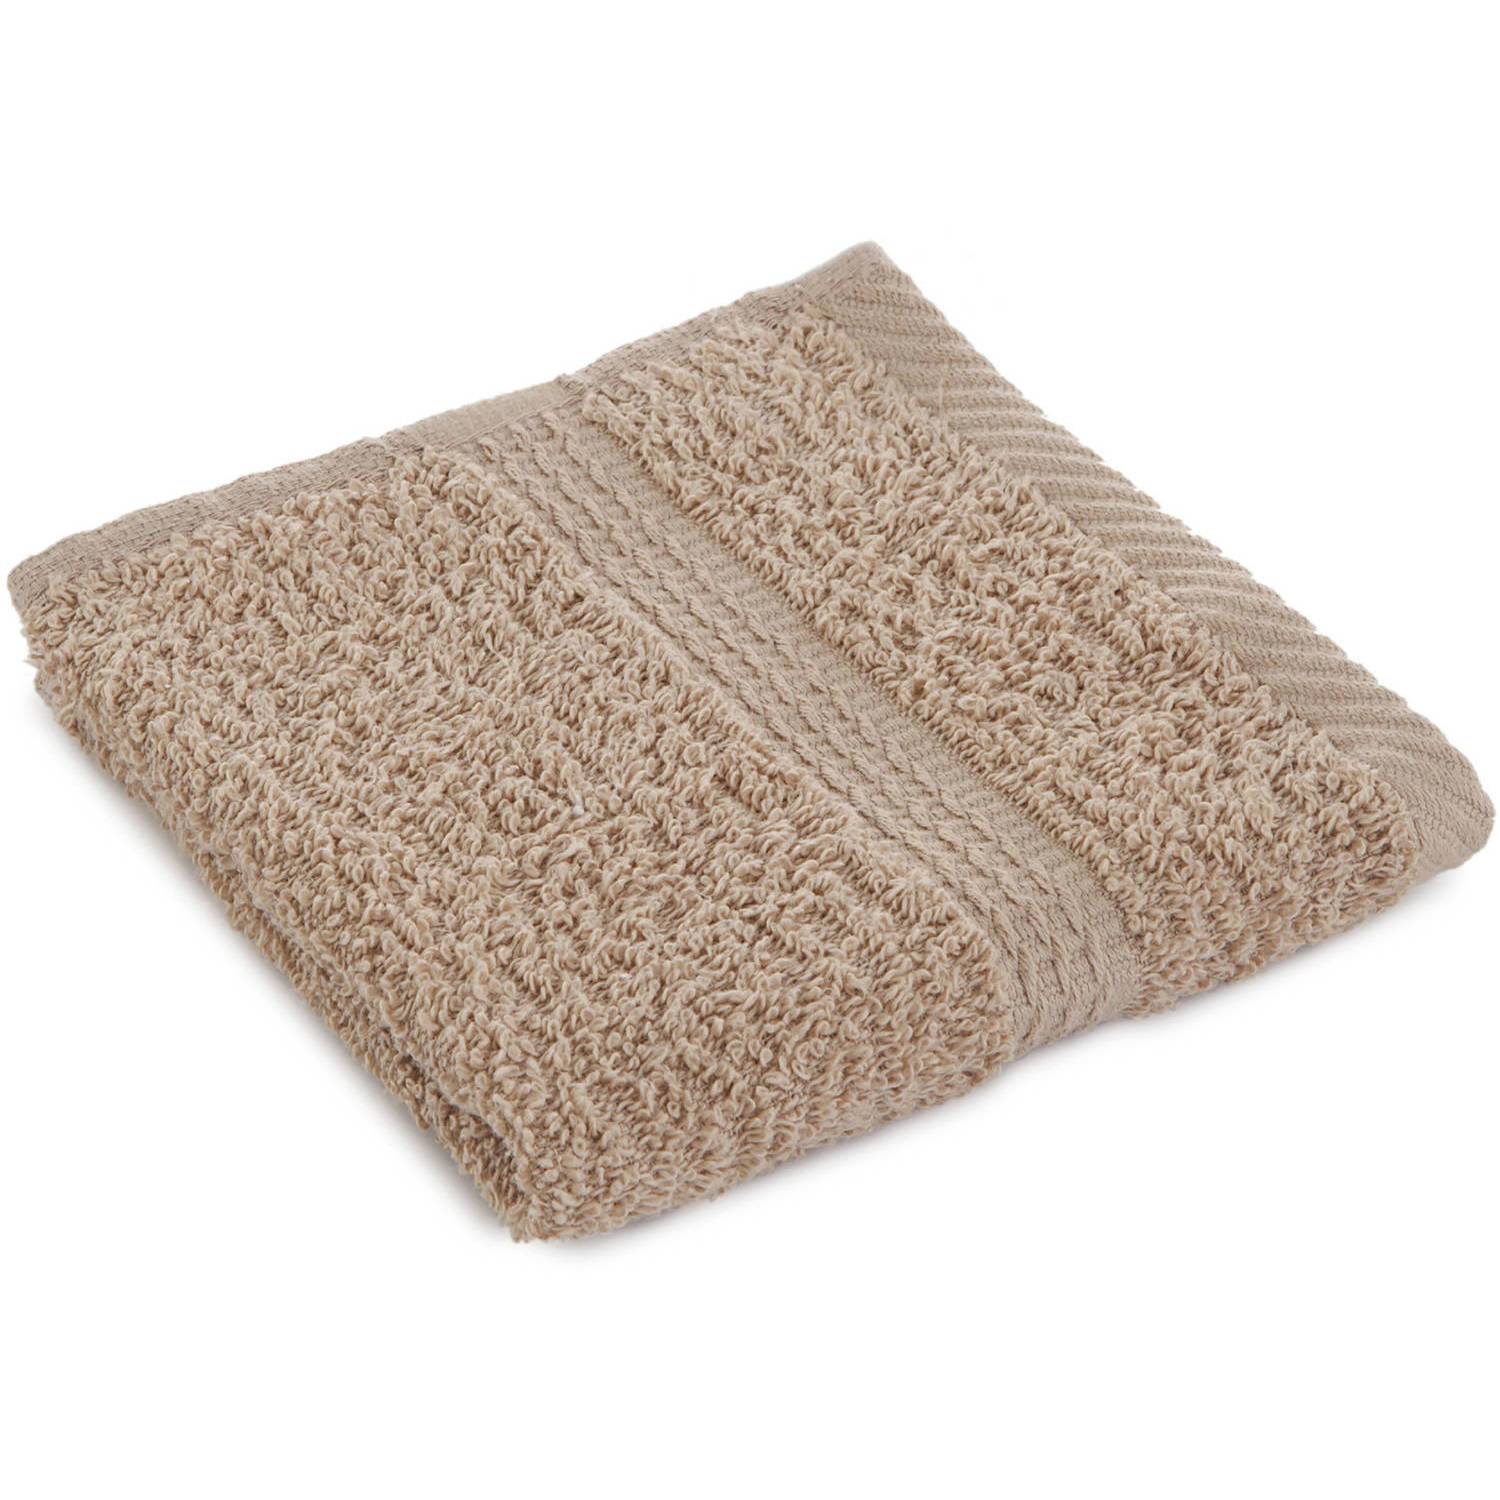 Utica Essentials Washcloth